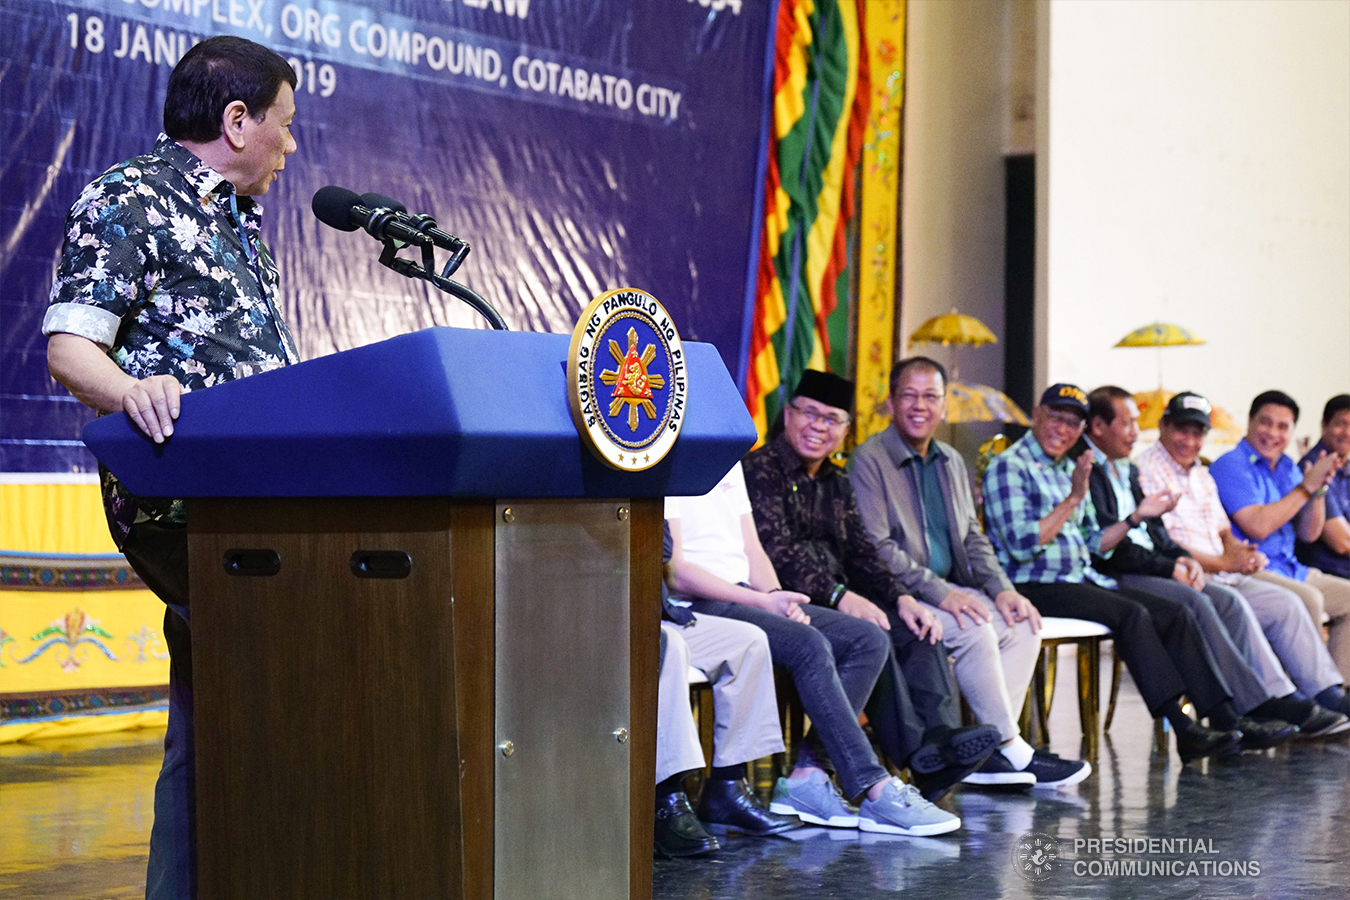 President Rodrigo Roa Duterte shares a light moment with distinguished guests while delivering his speech during the Peace Assembly for the Ratification of Republic Act No. 11054 or the Bangsamoro Organic Law (BOL), held at the Shariff Kabunsuan Cultural Complex Compound in Cotabato City on January 18, 2019. ARMAN BAYLON/PRESIDENTIAL PHOTO